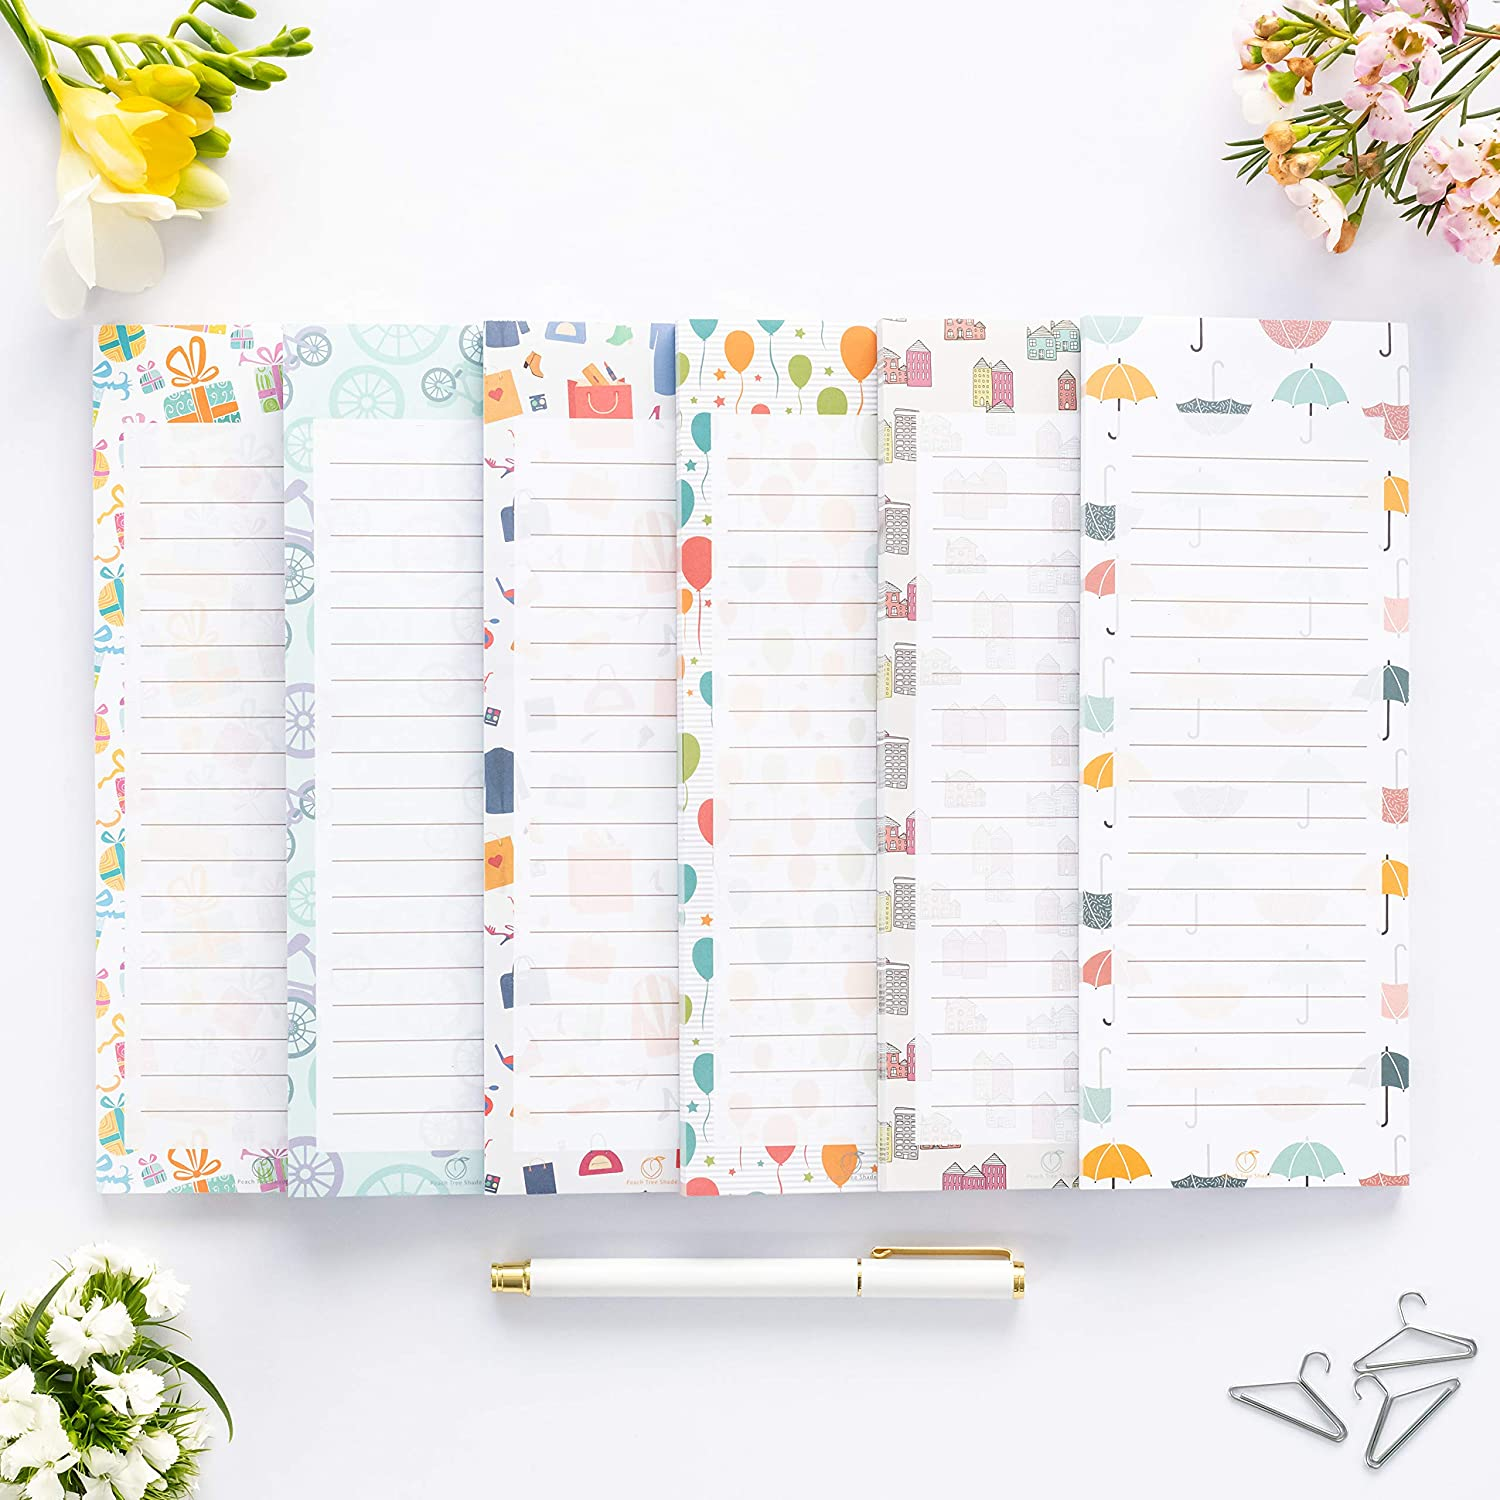 """Peach Tree Shade Magnetic Notepads, 6-Pack 60 Sheets Per Pad 3.5"""" x 9"""", for Fridge, Kitchen, Shopping, Grocery, To-Do List, Memo, Reminder, Note, Book, Stationery, (Cutenotes)"""